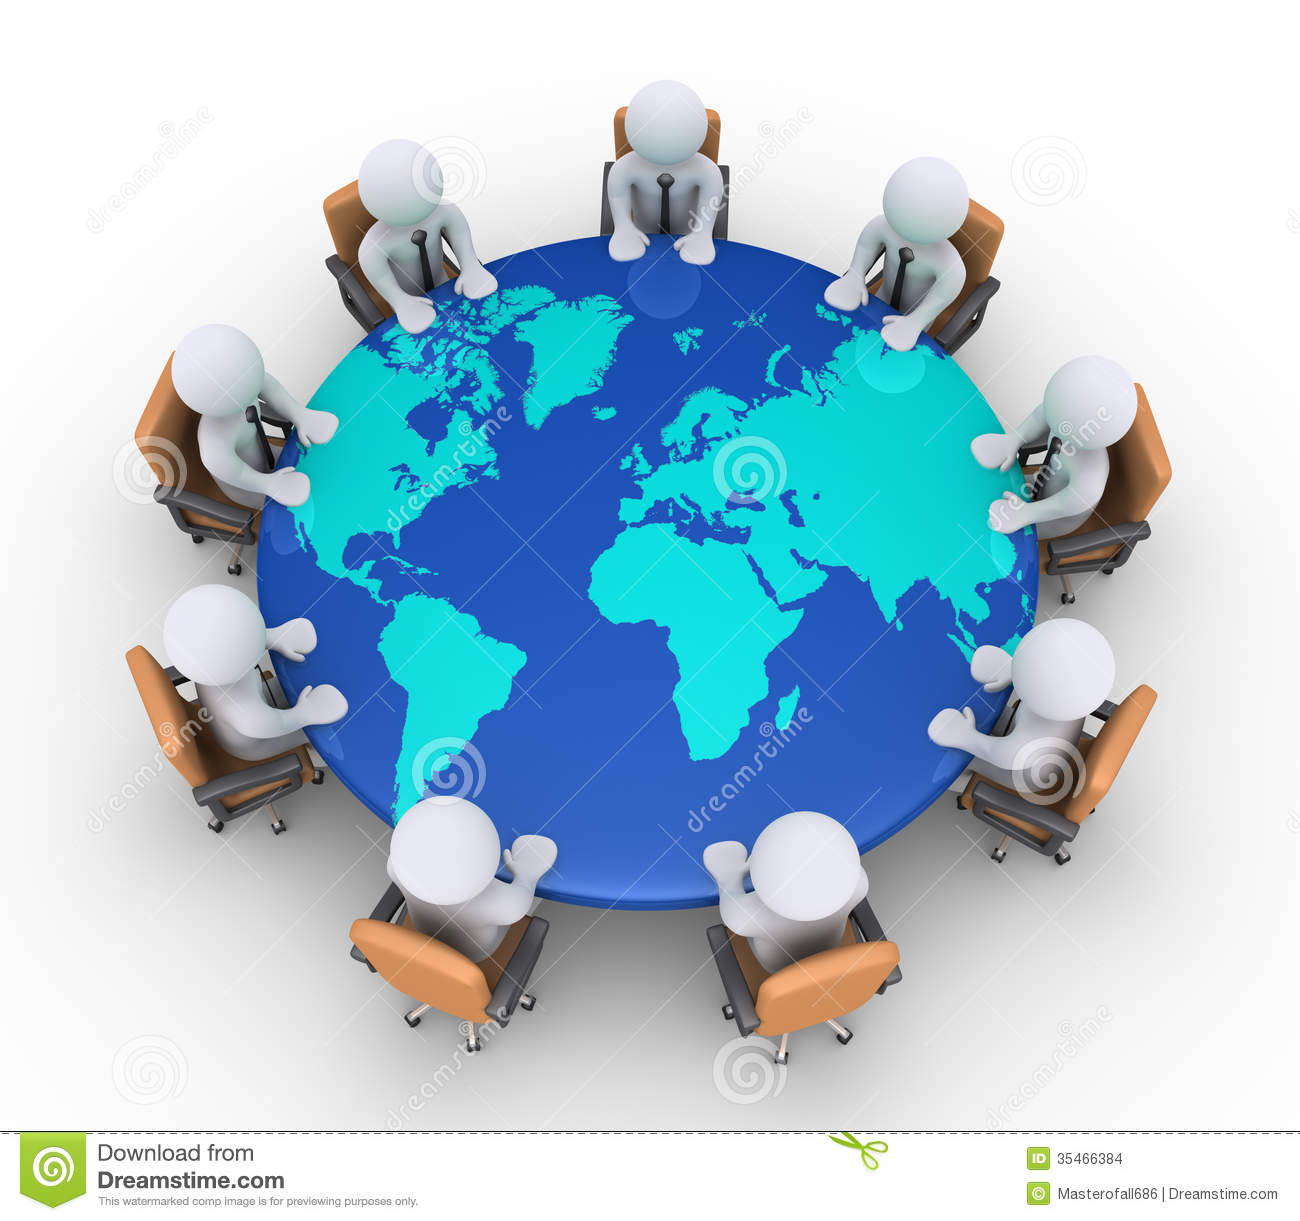 Businessmen Sitting On Chairs And Table With World Map  : businessmen sitting chairs table world map d armchairs round 35466384 <strong>Clip Art</strong> Office-Supplies from www.dreamstime.com size 1300 x 1221 jpeg 127kB